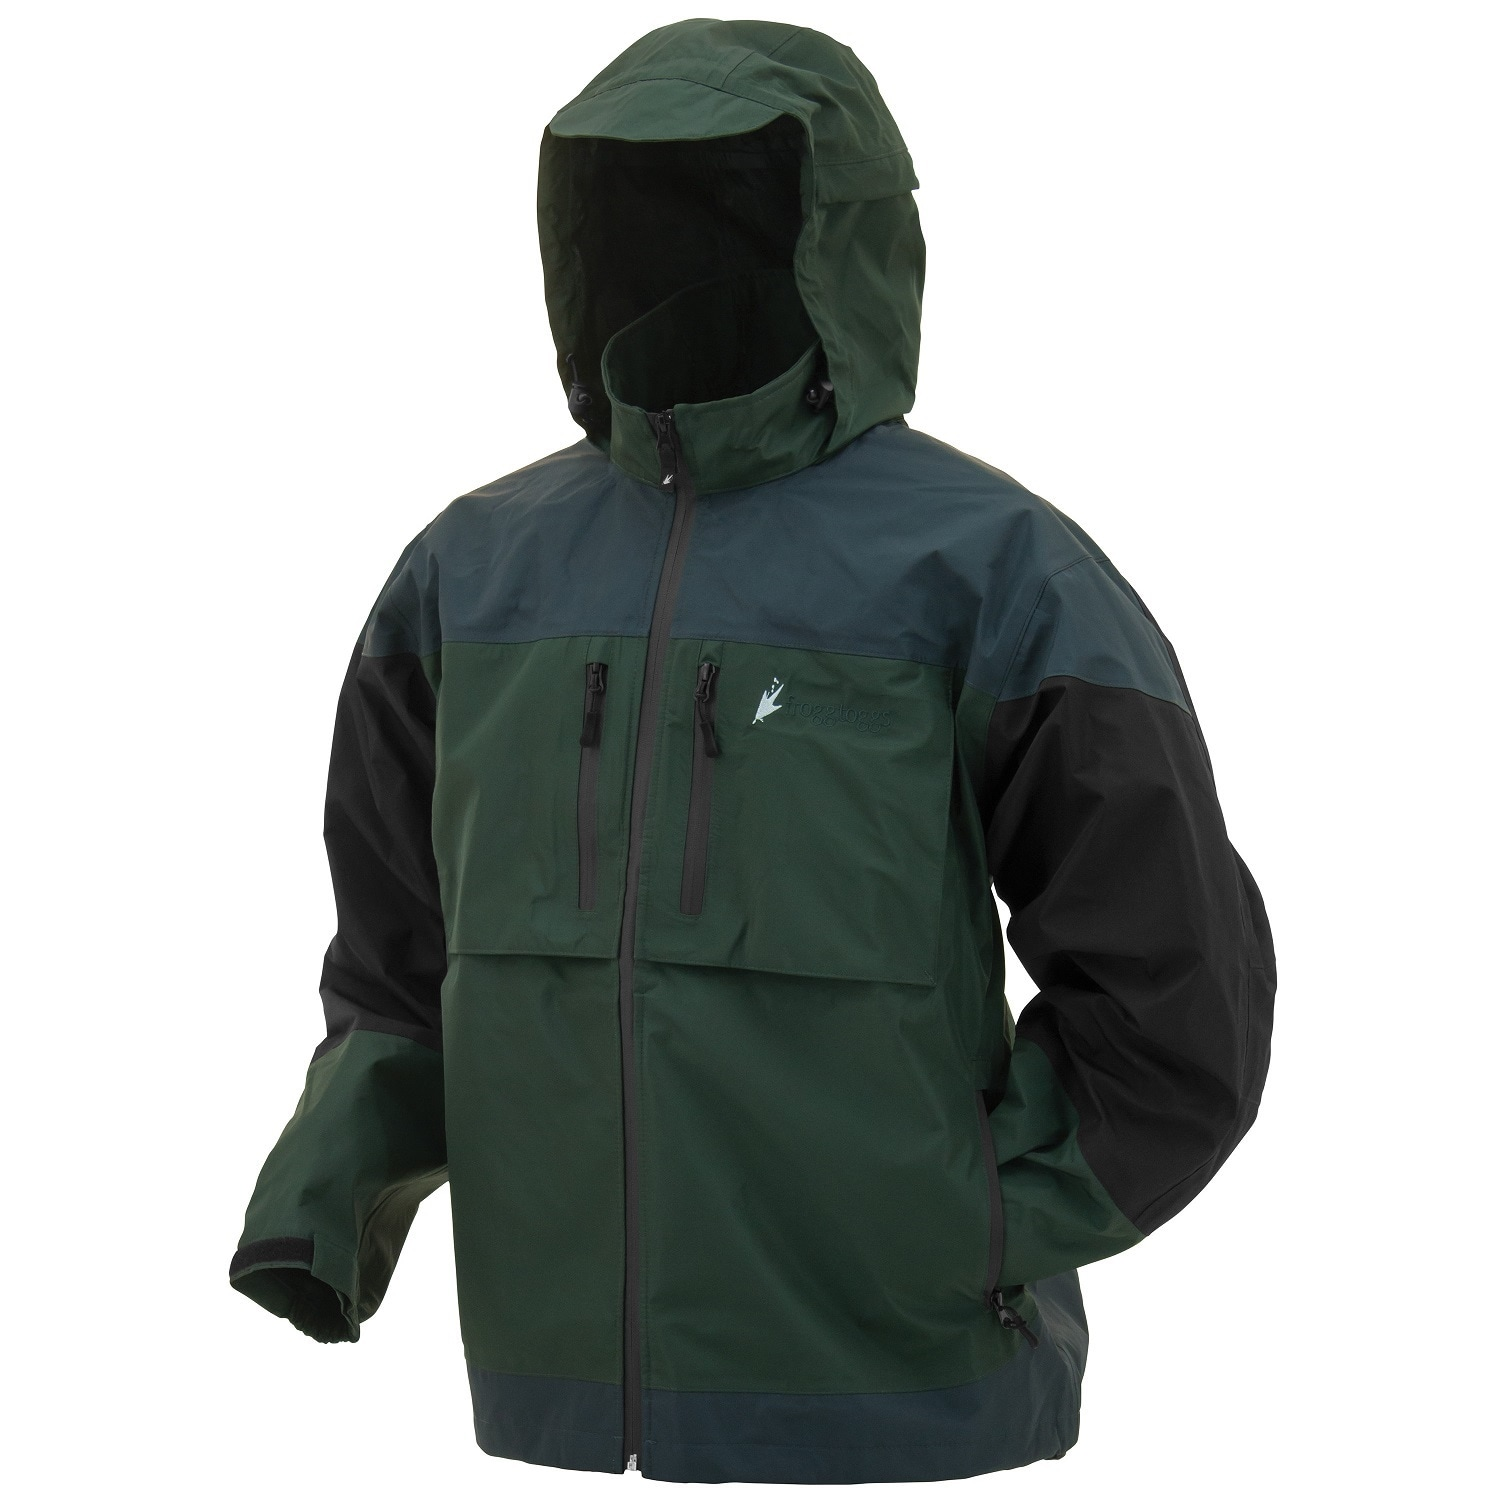 Frogg Toggs Toadz Anura Jacket Forest Green (XLarge), Adu...